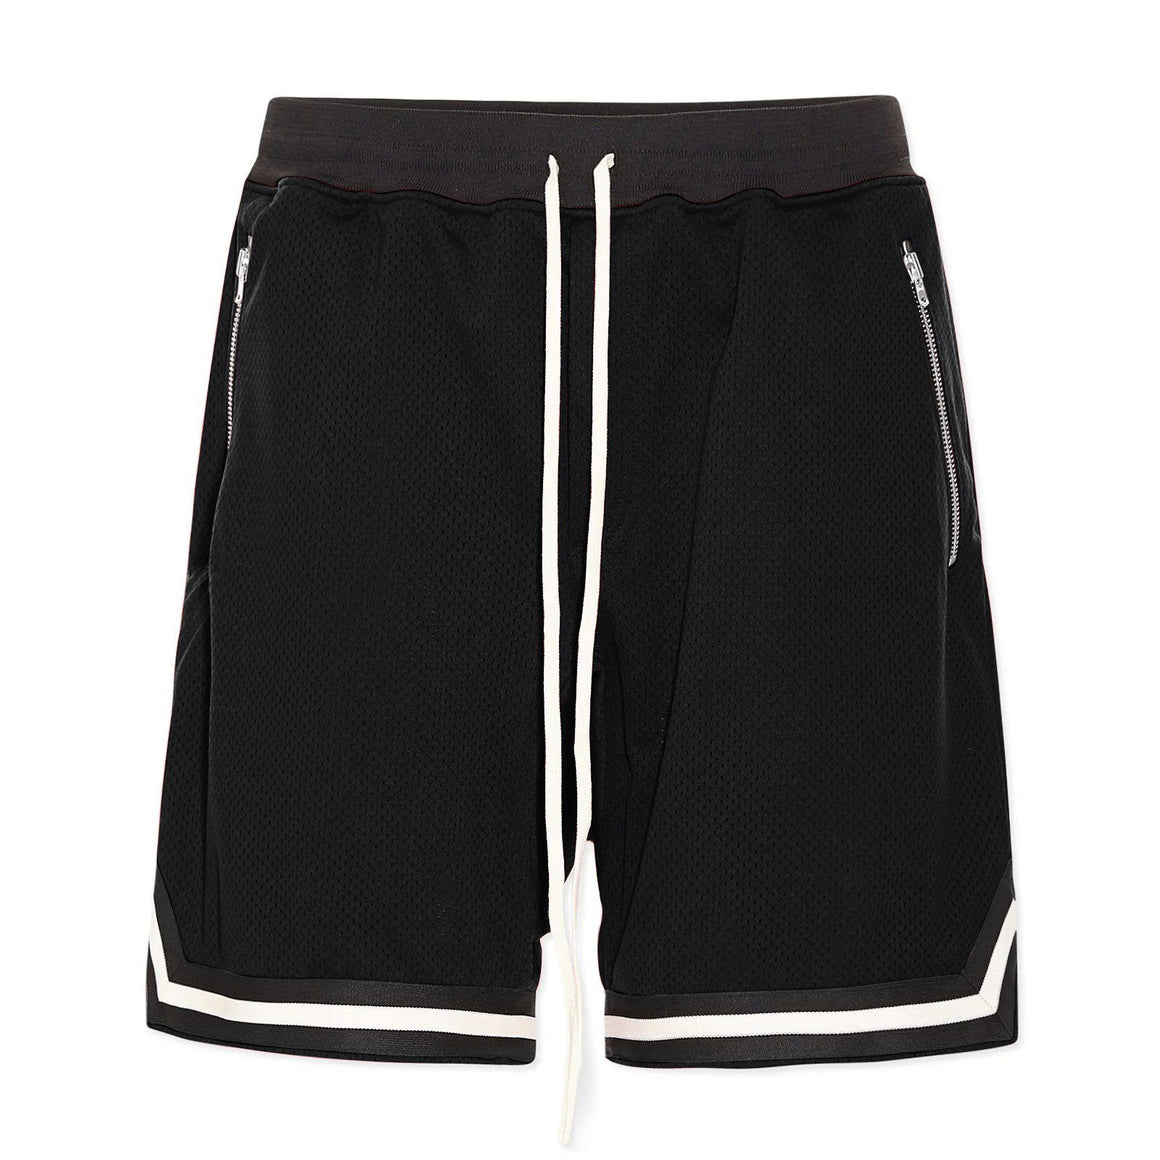 Sports Mesh Shorts S1 - Black - Insurgence Wear - Affordable Streetwear Essentials